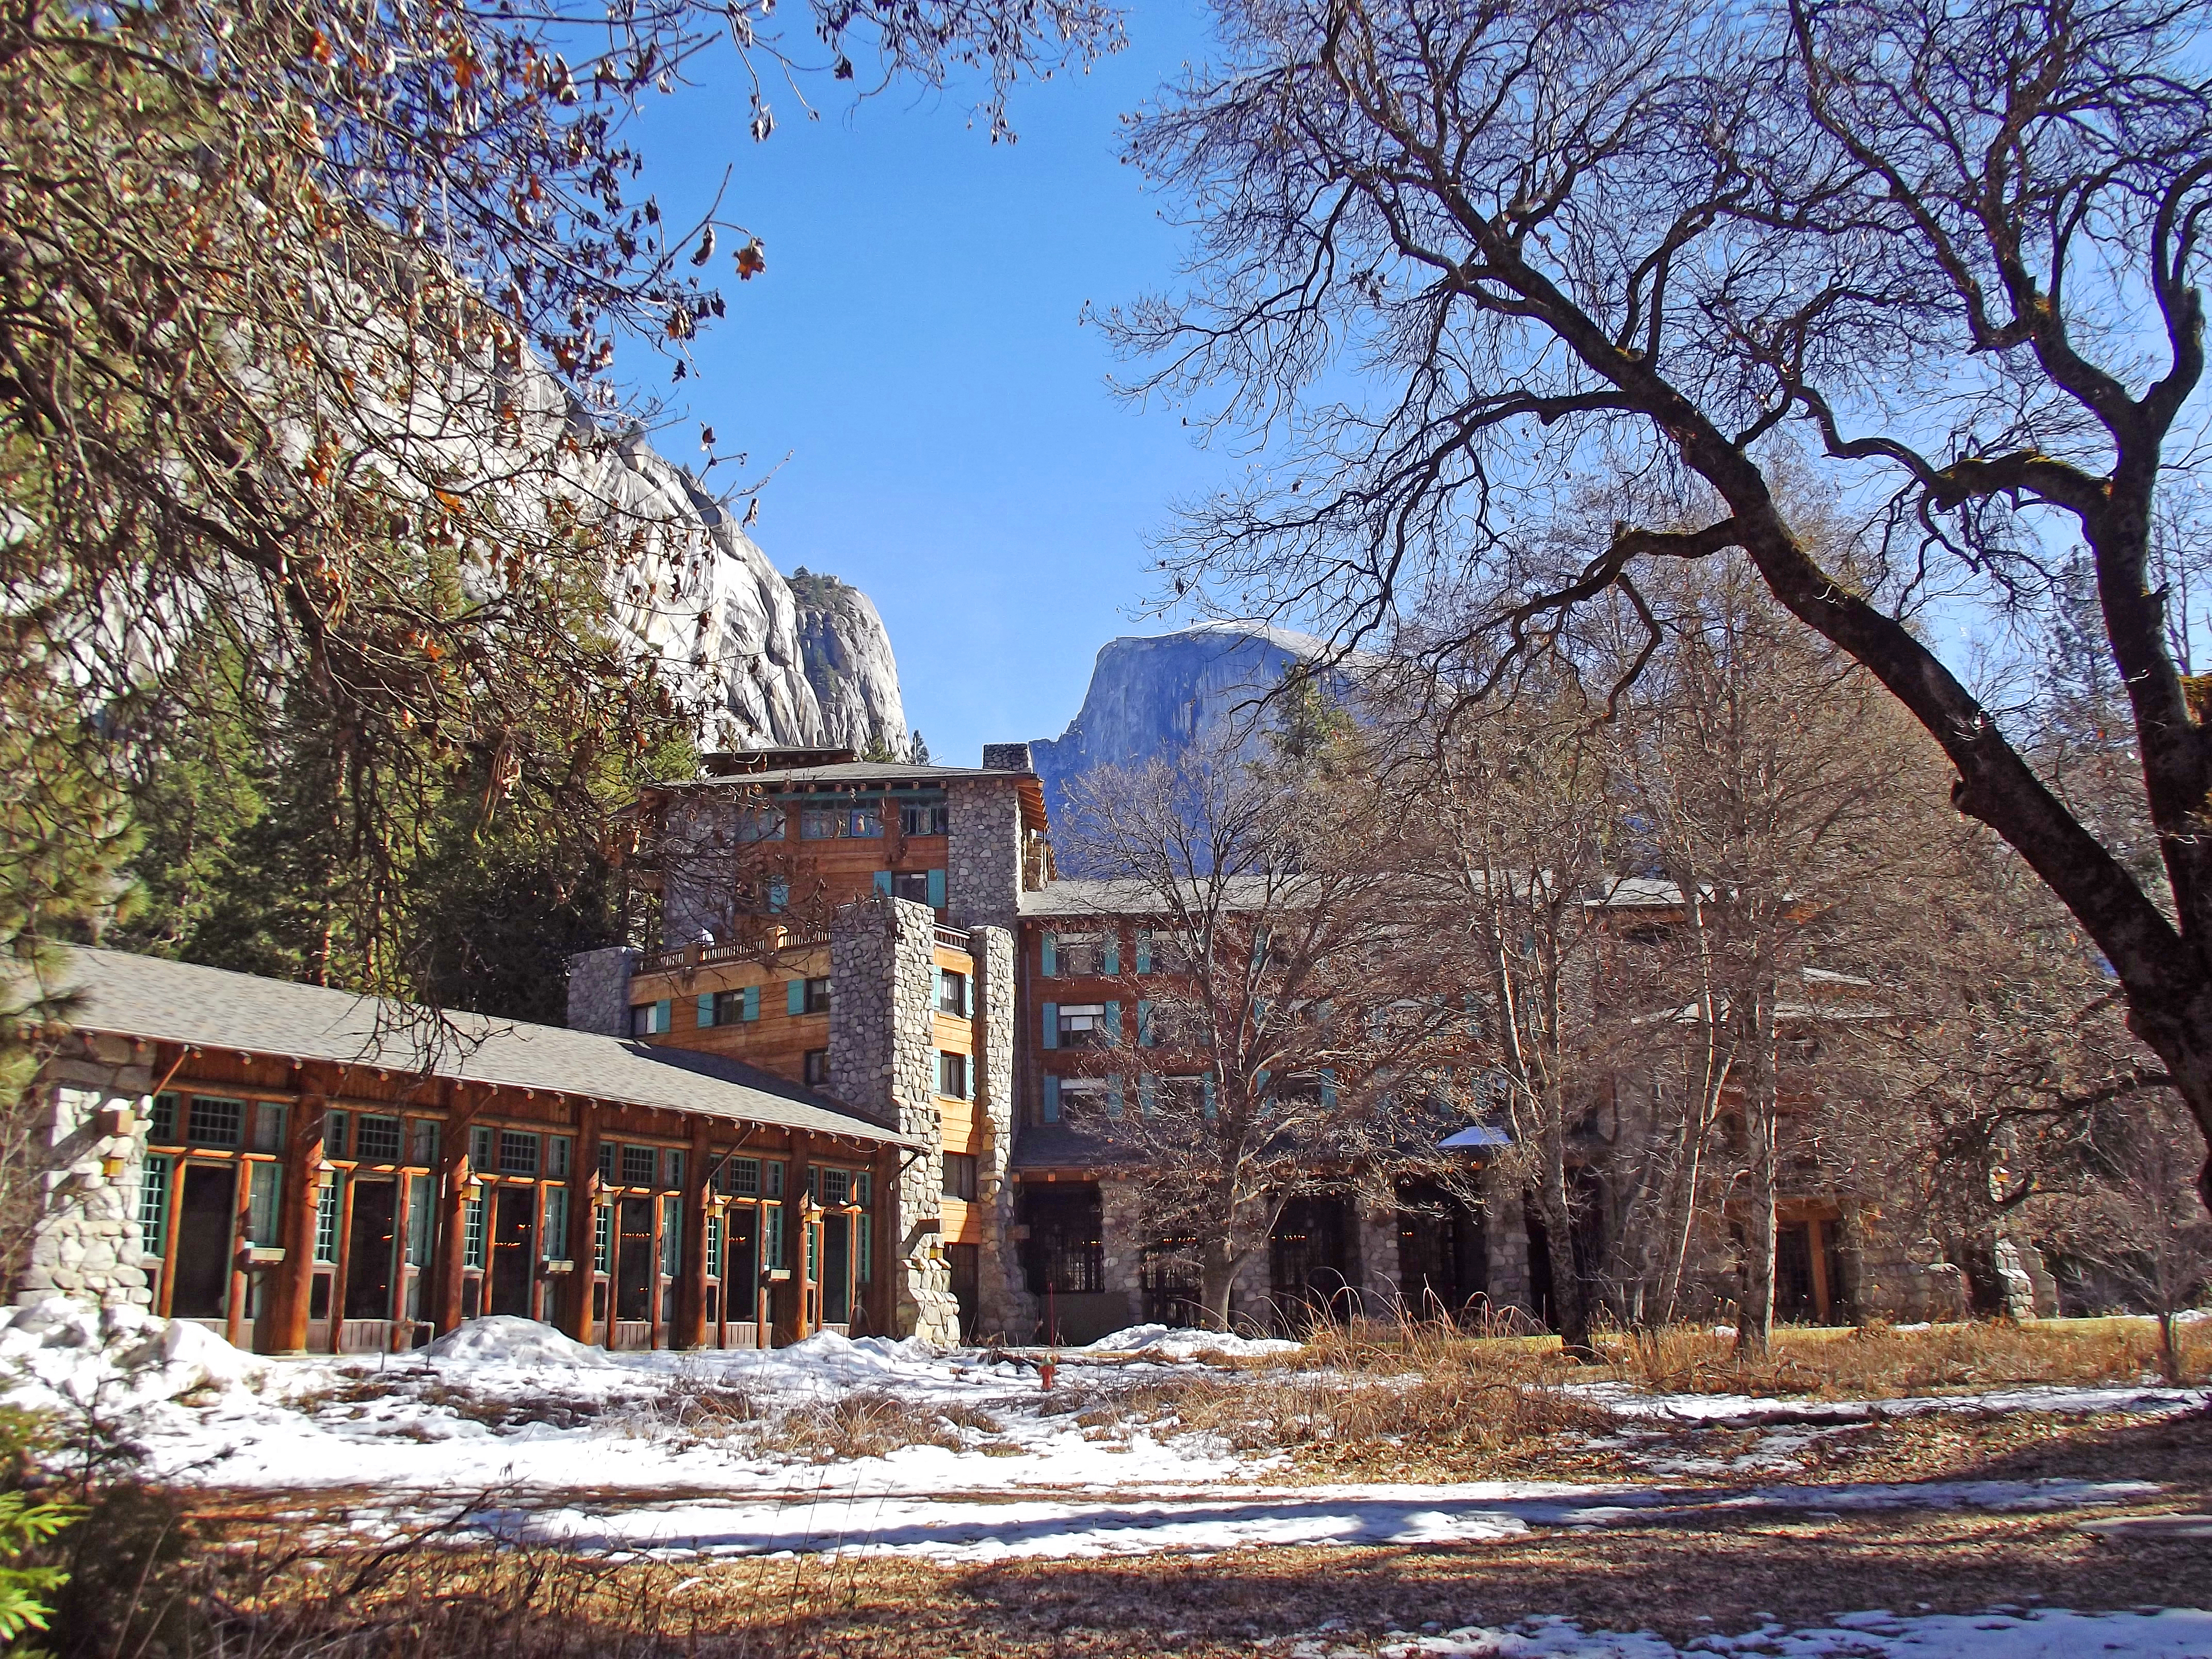 Ahwahnee Hotel - Wikipedia on grand canyon accommodations, redwood forest accommodations, camino de santiago accommodations, death valley accommodations, crater lake accommodations, bryce canyon accommodations, olympic national park accommodations, glacier national park accommodations, natchez trace accommodations, dry tortugas accommodations,